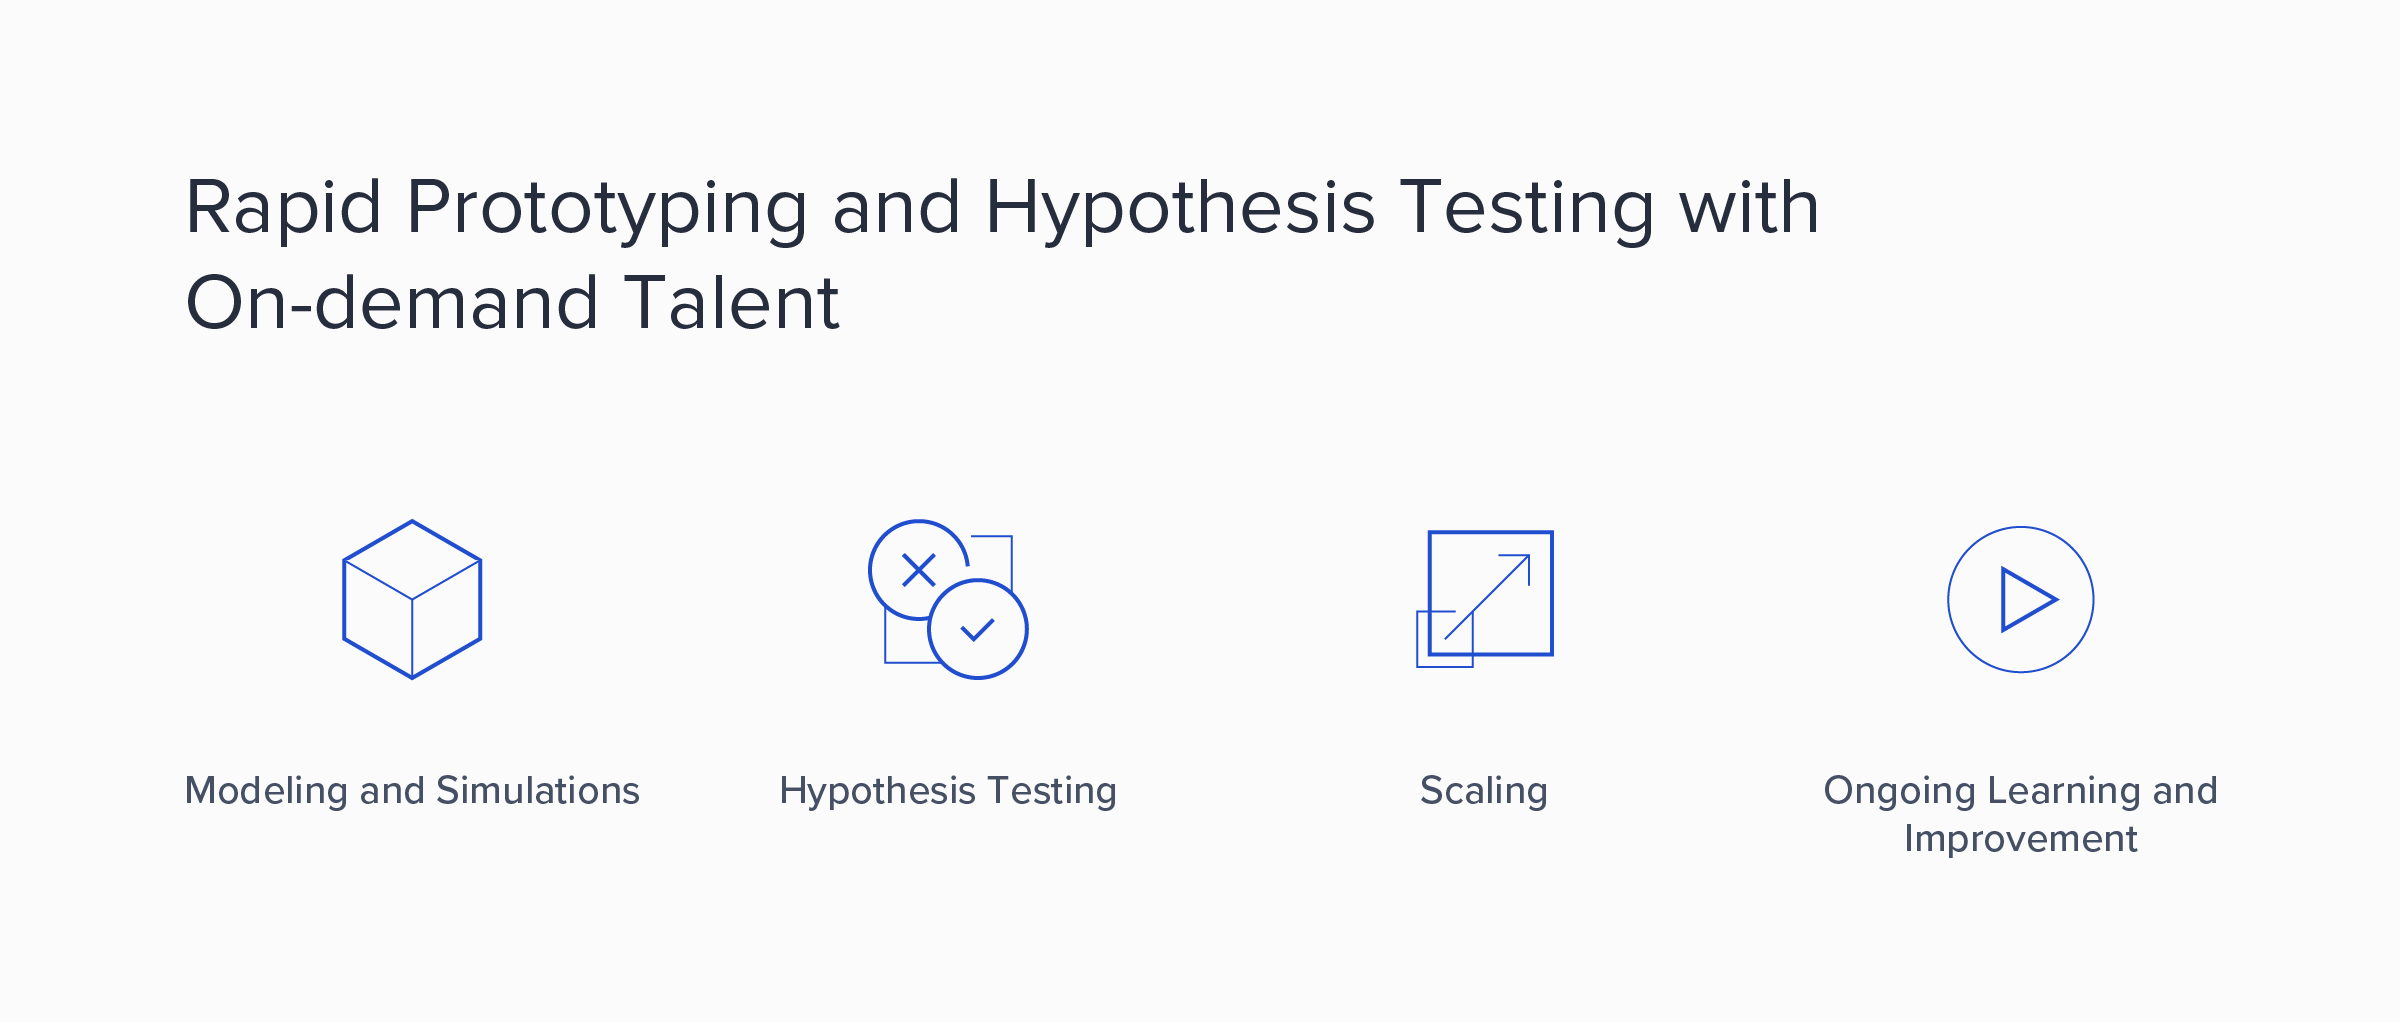 How to Prototype and Test Hypotheses with On-demand Talent